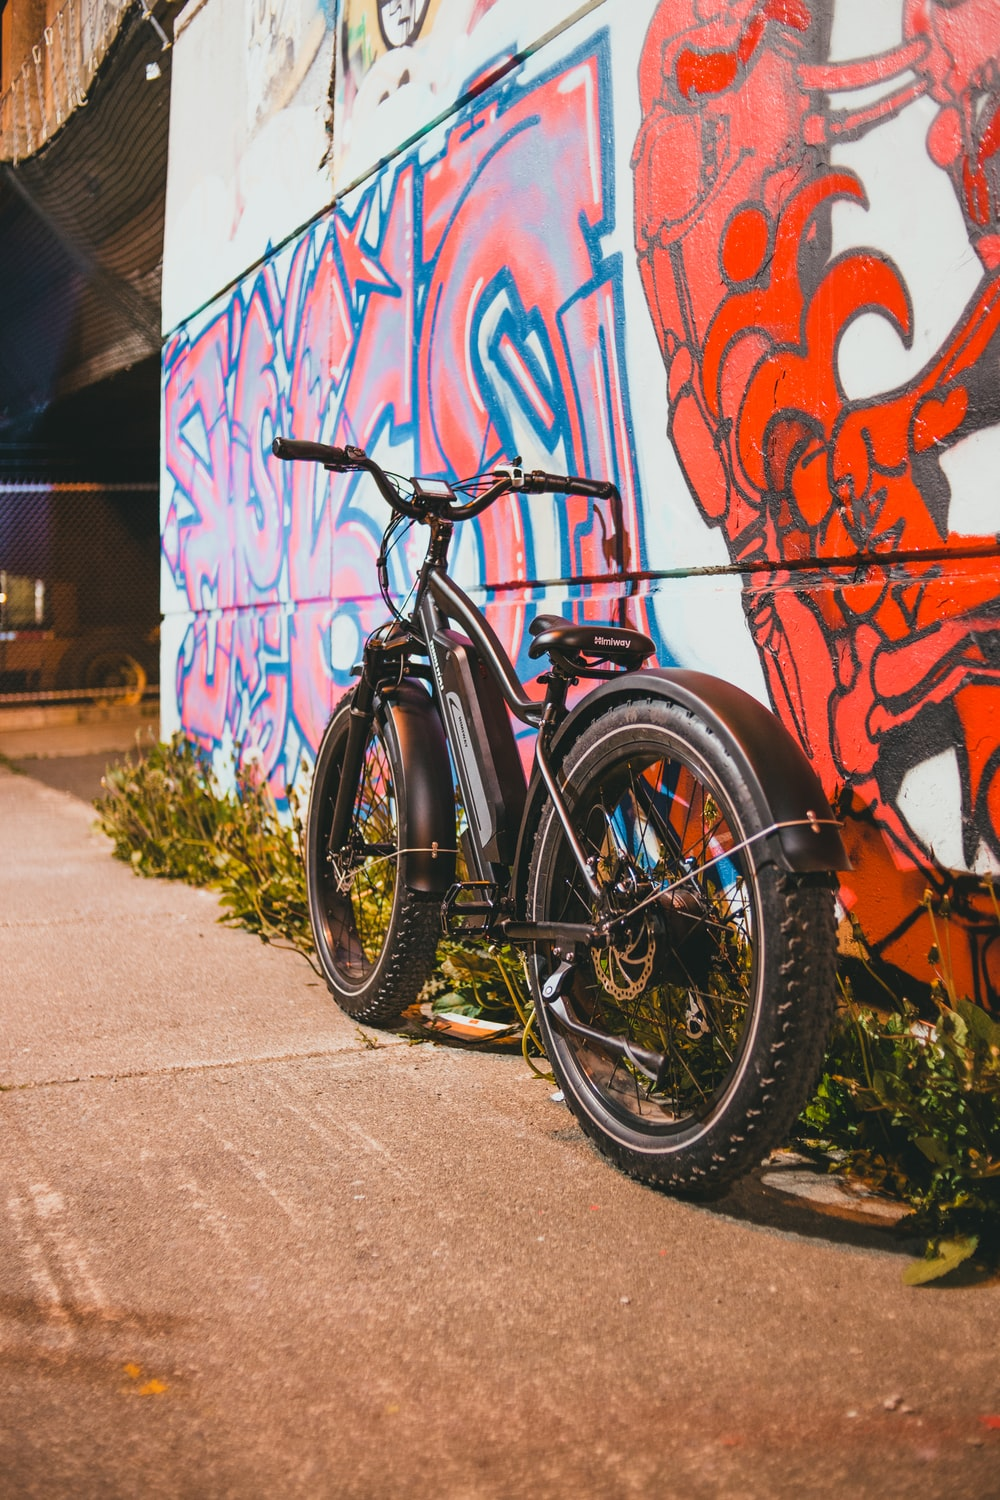 black and orange mountain bike parked beside wall with graffiti